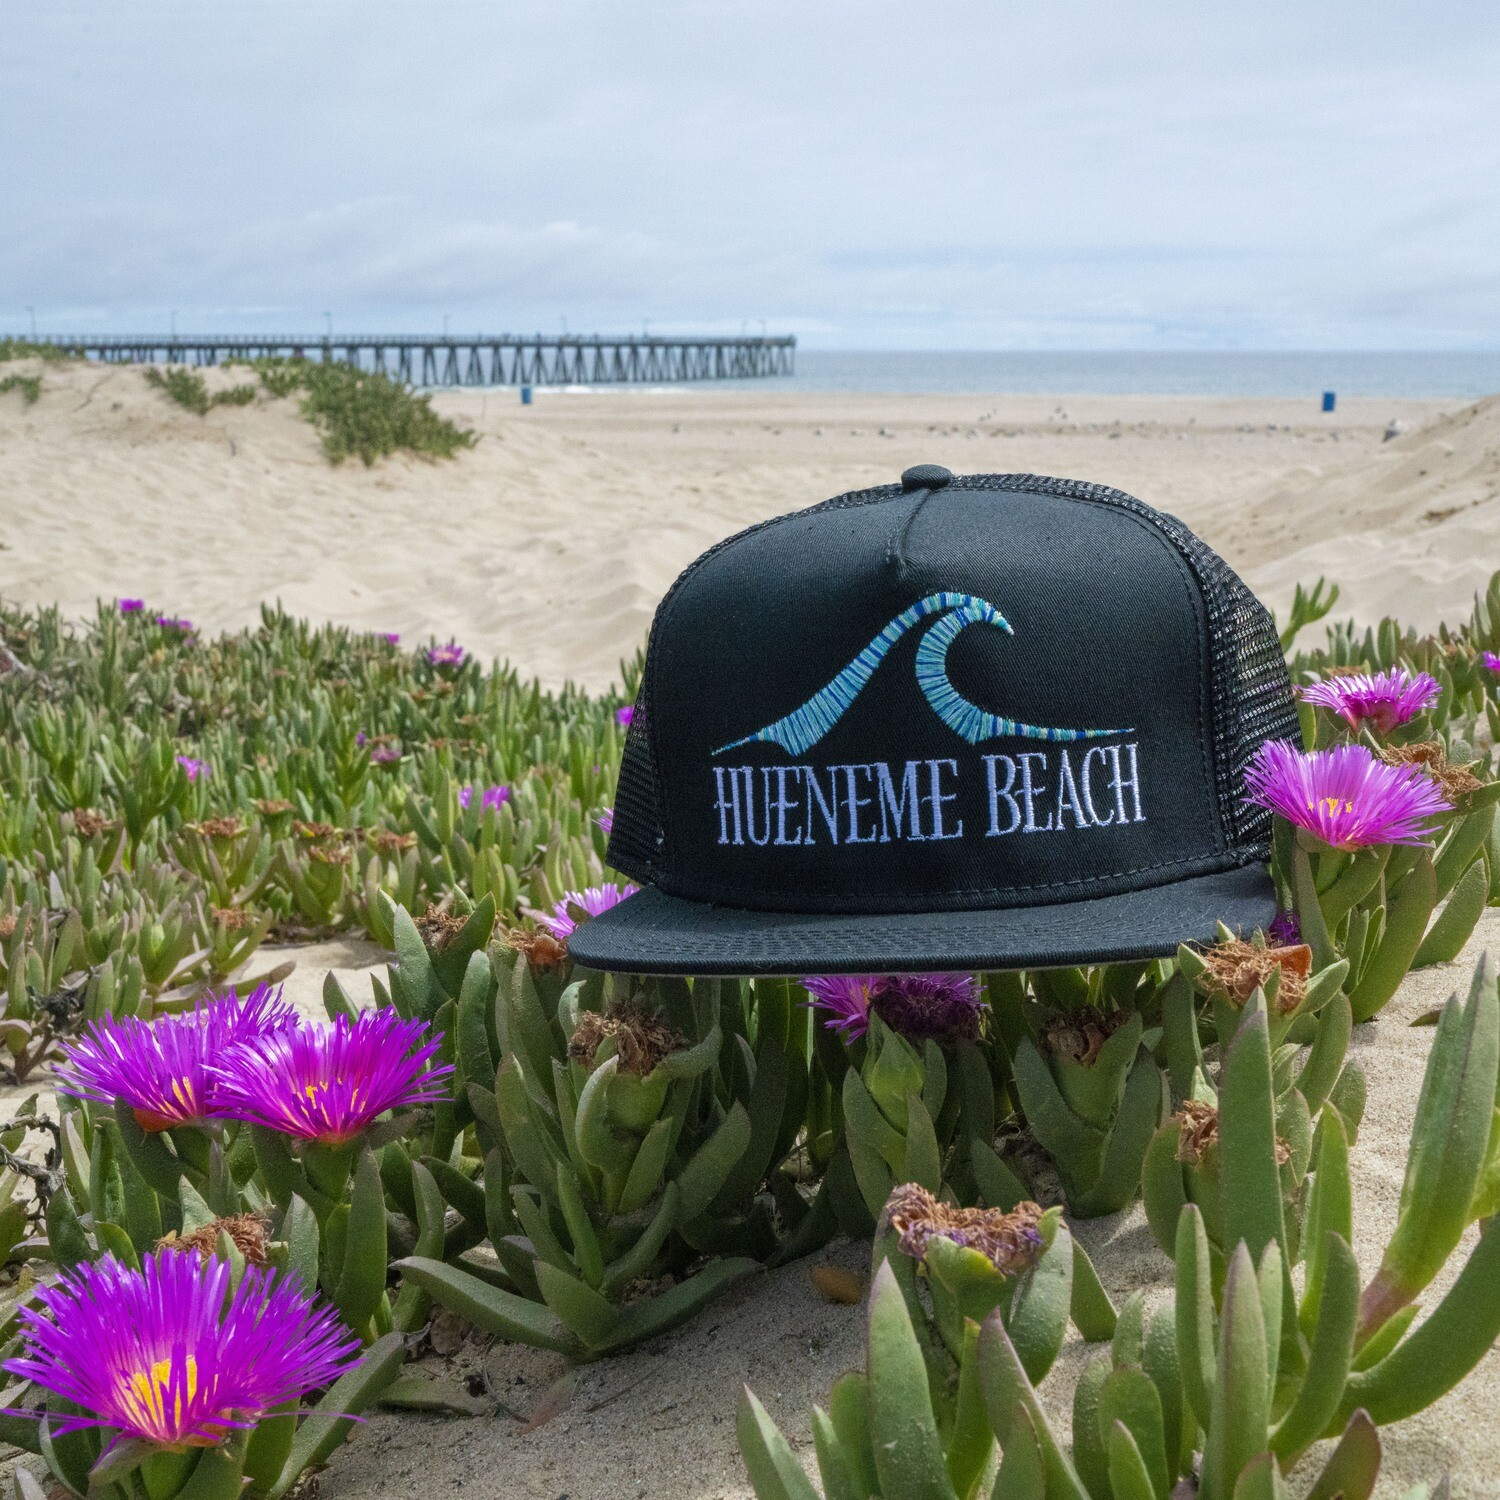 Hueneme Beach - Black Trucker Hat Multicolor Thread